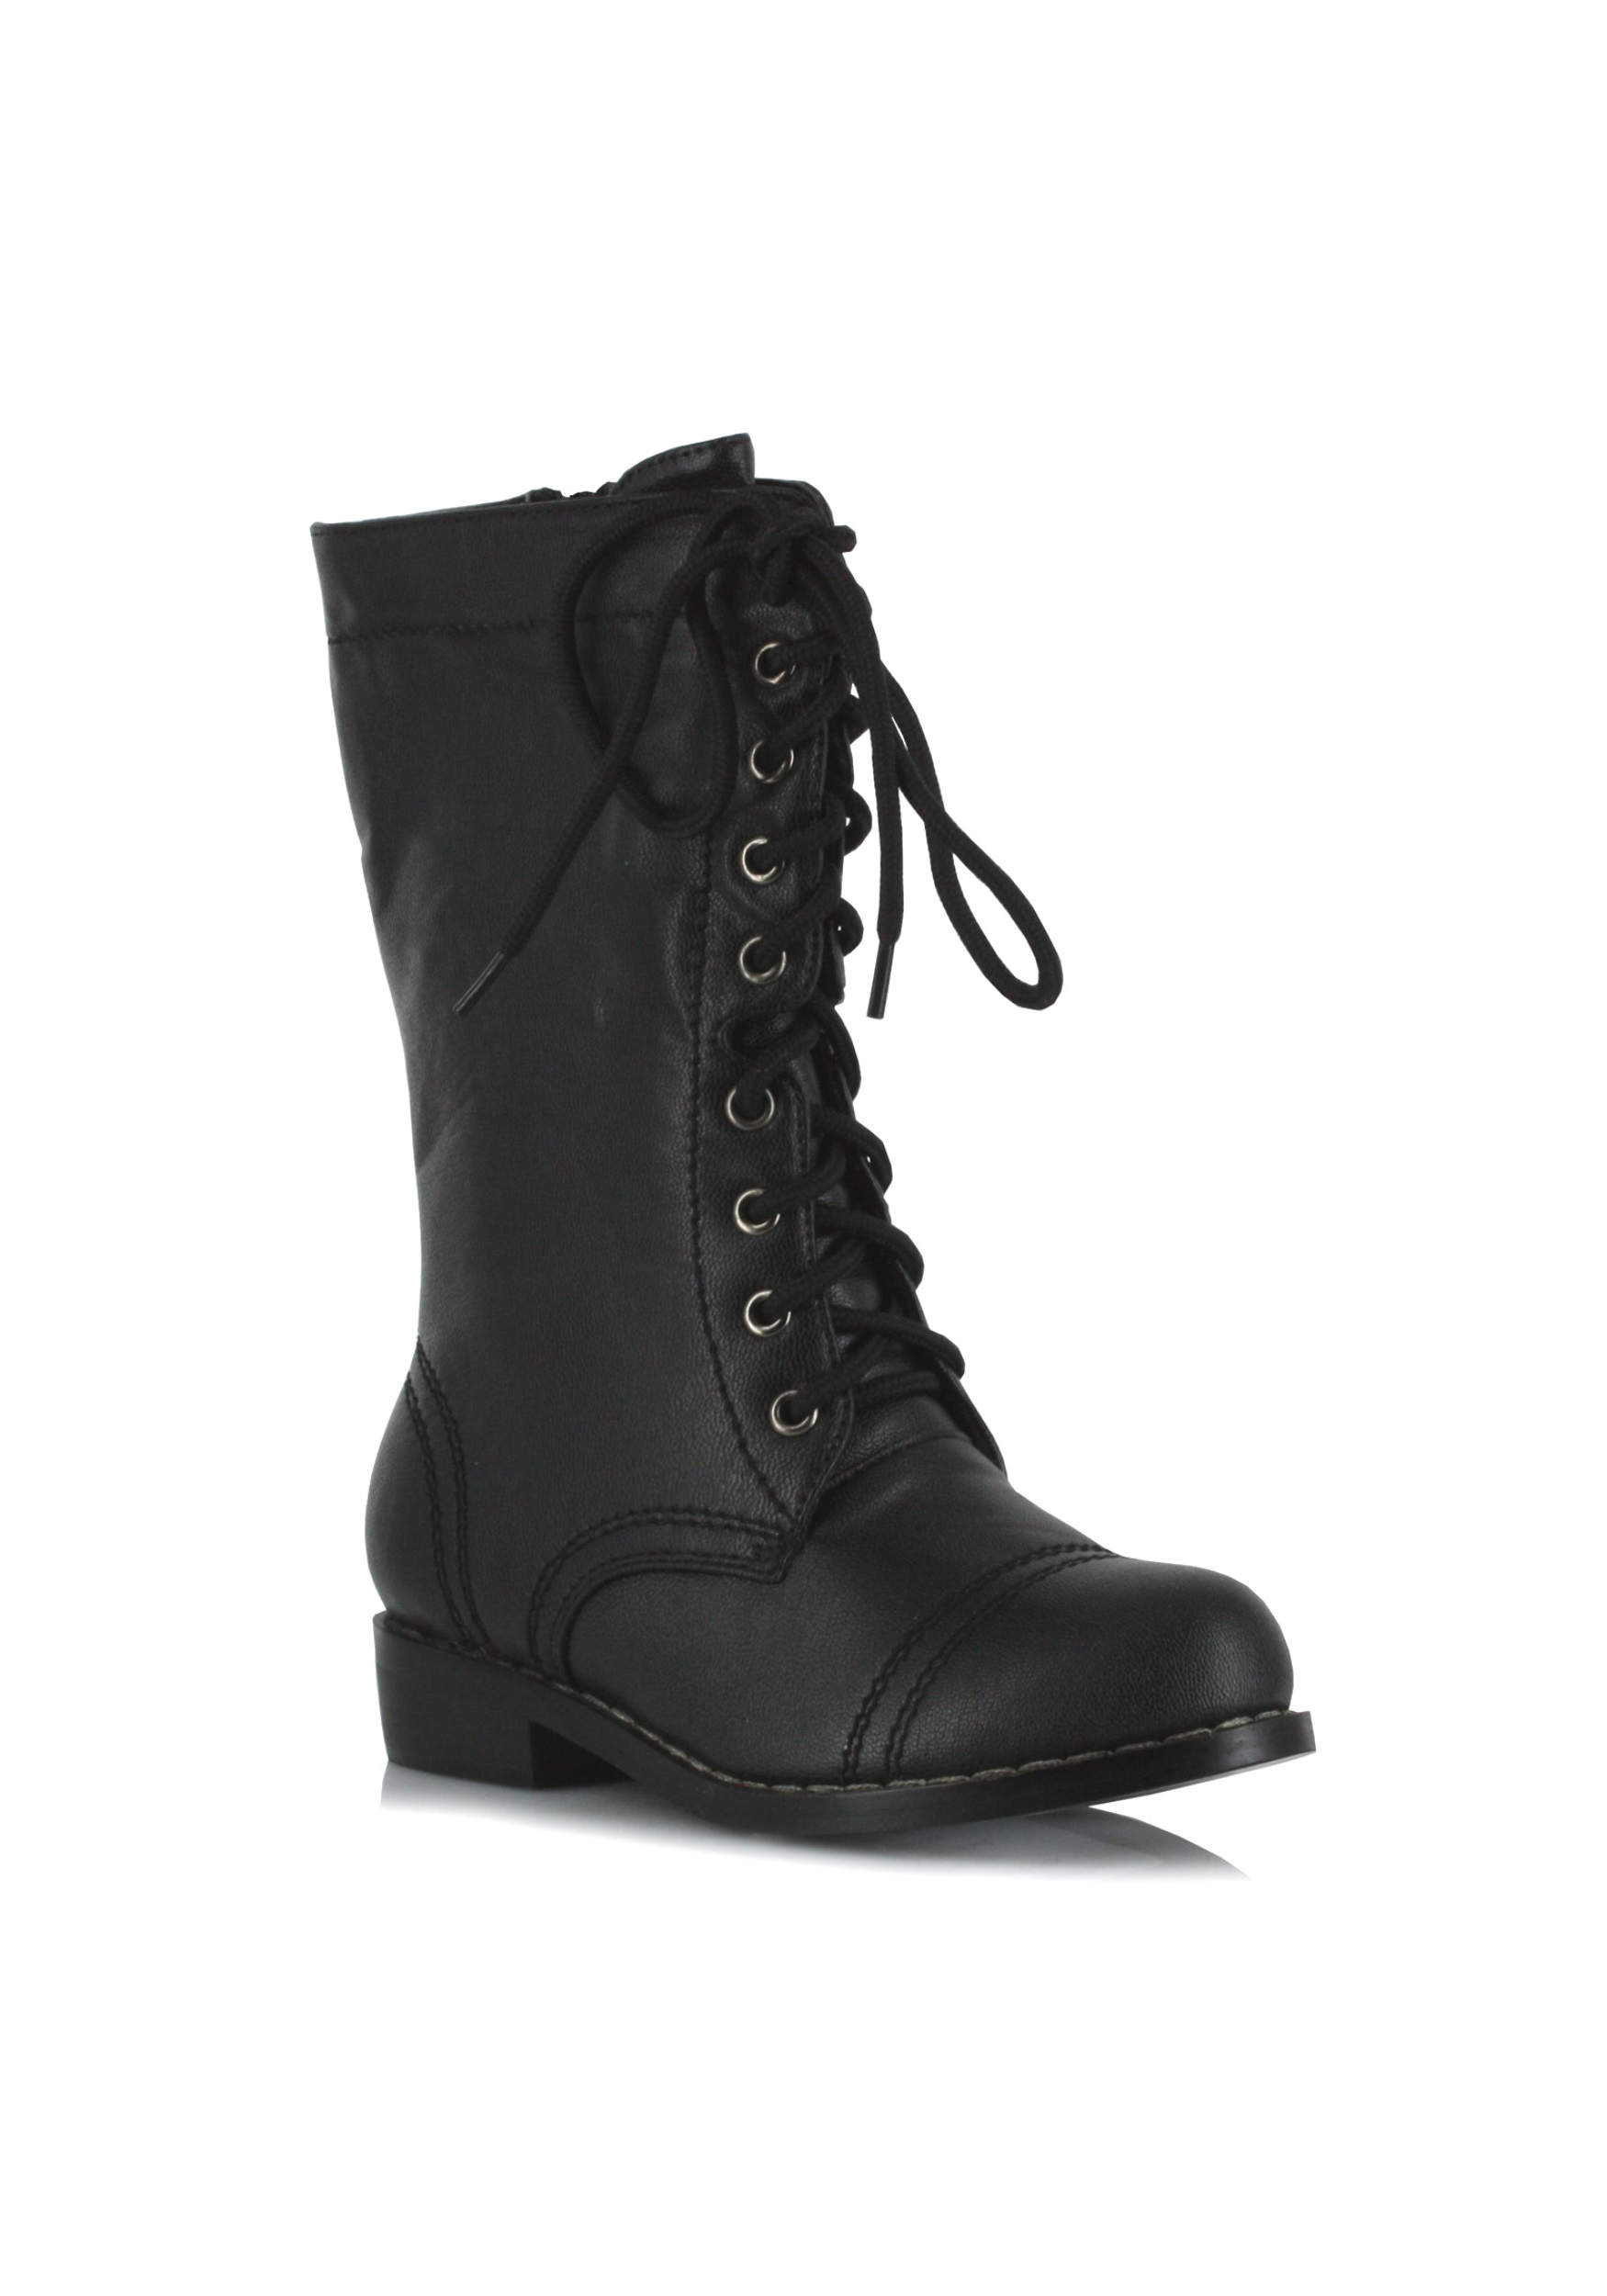 Black Costume Military Boots for Kids